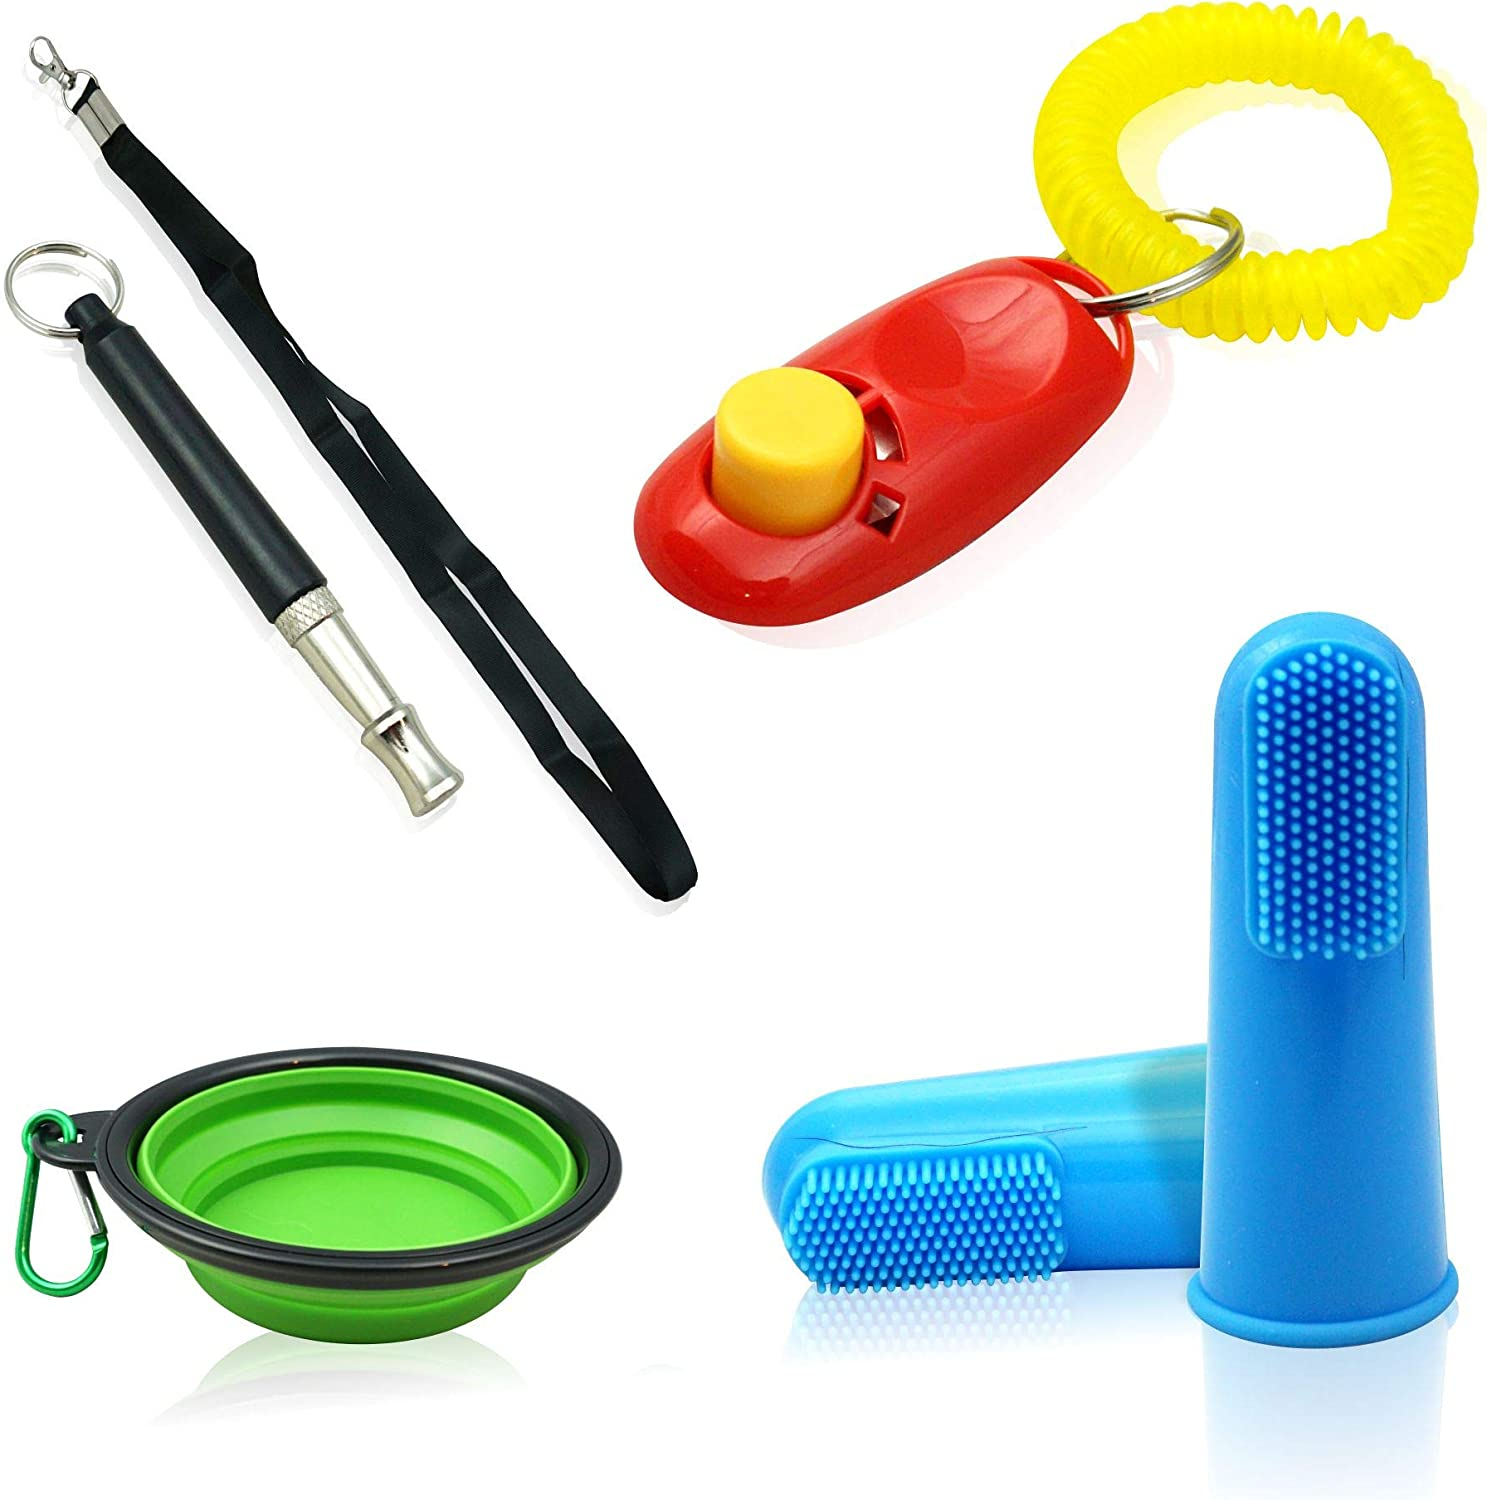 Butler and Co Dog Training Value Fashionable Lanyard - KIT Click Cheap mail order sales Whistle on